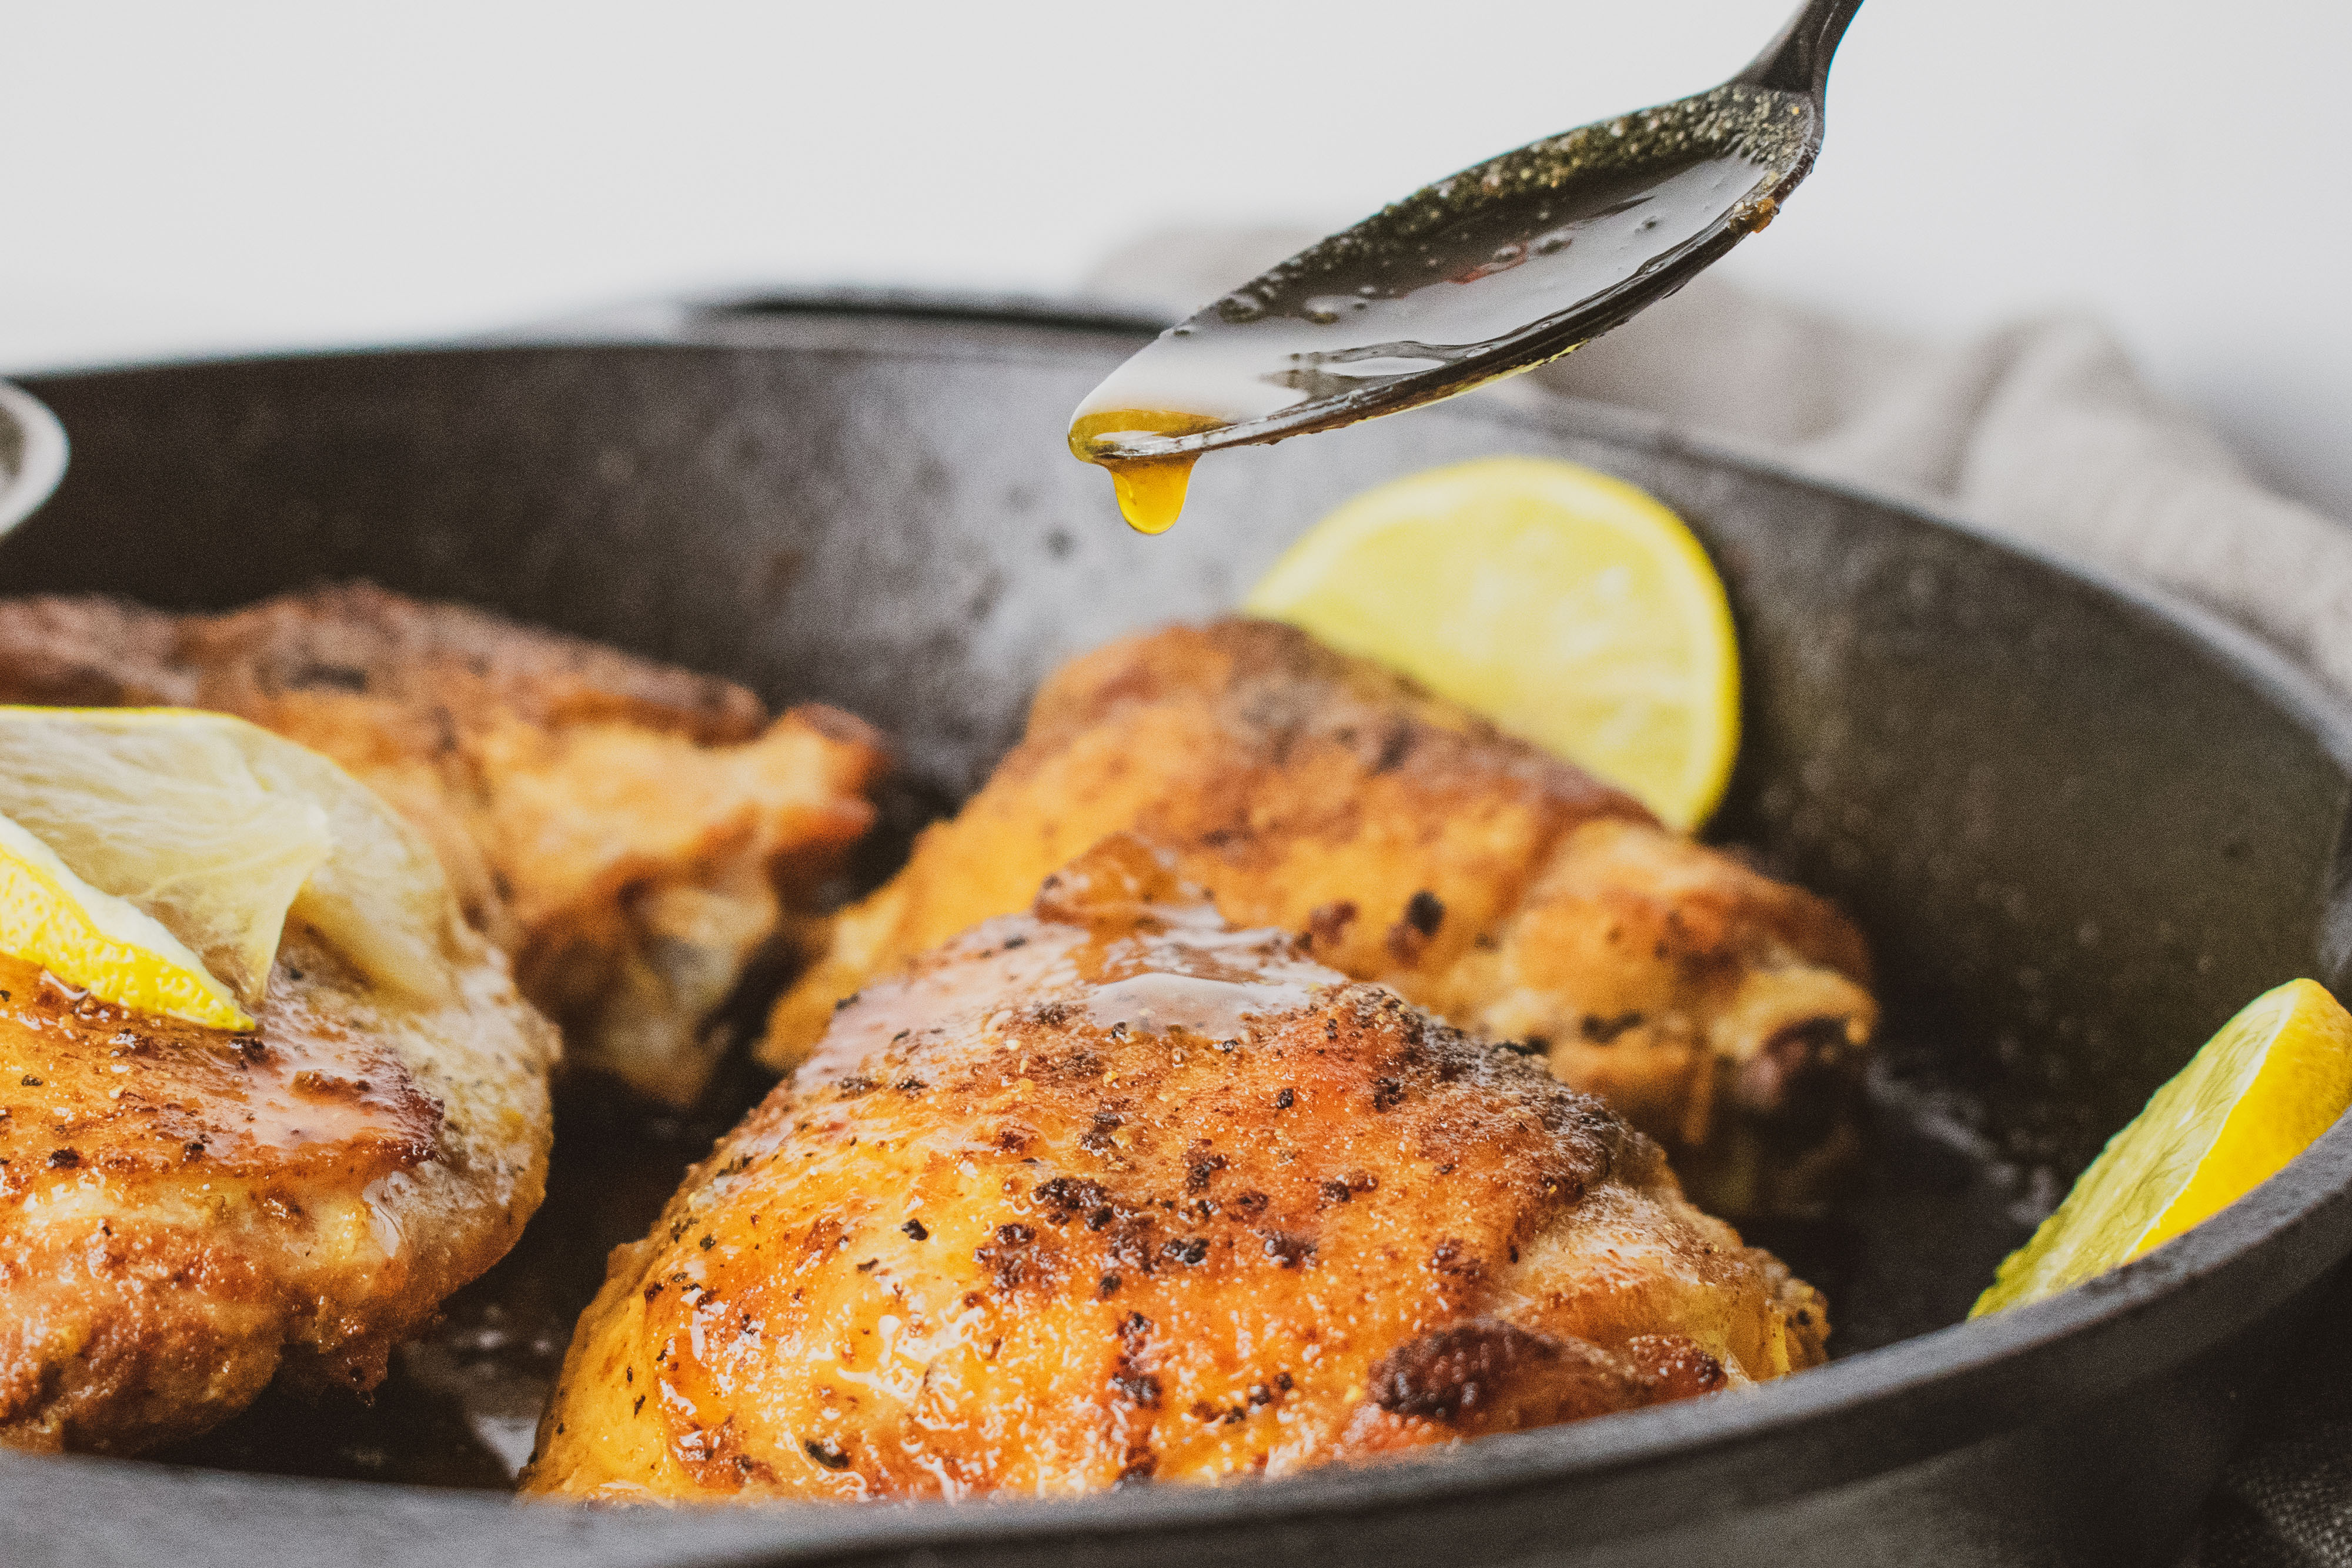 Low carb crispy chicken thighs with lemons in a cast iron skillet seasoned with lemon pepper. With a spoon pour juice over the chicken.